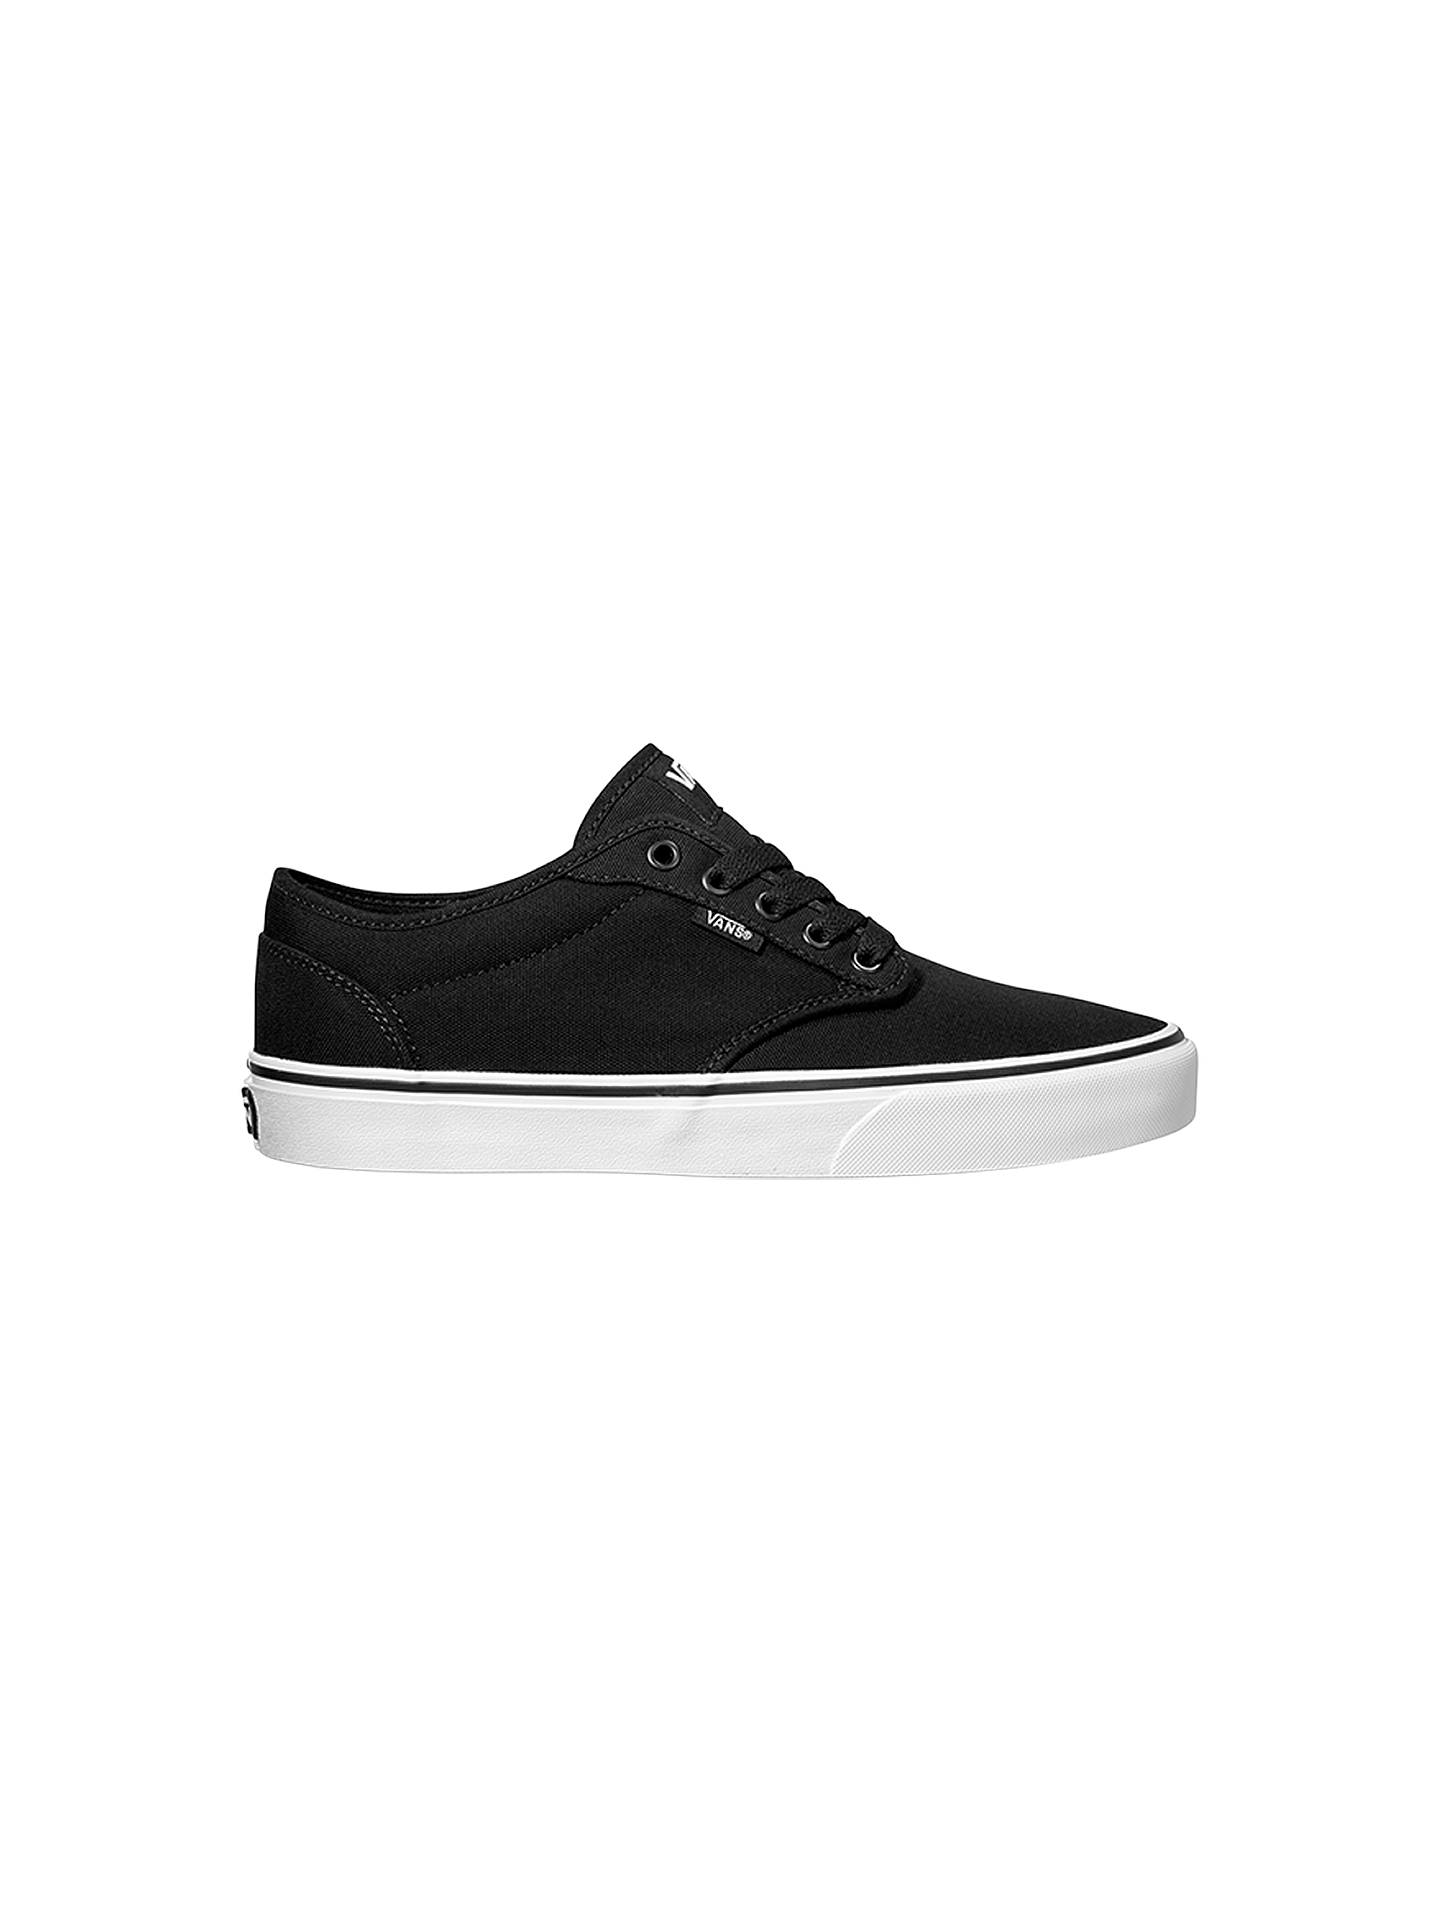 422dc09f65 Vans Atwood Canvas Trainers at John Lewis   Partners